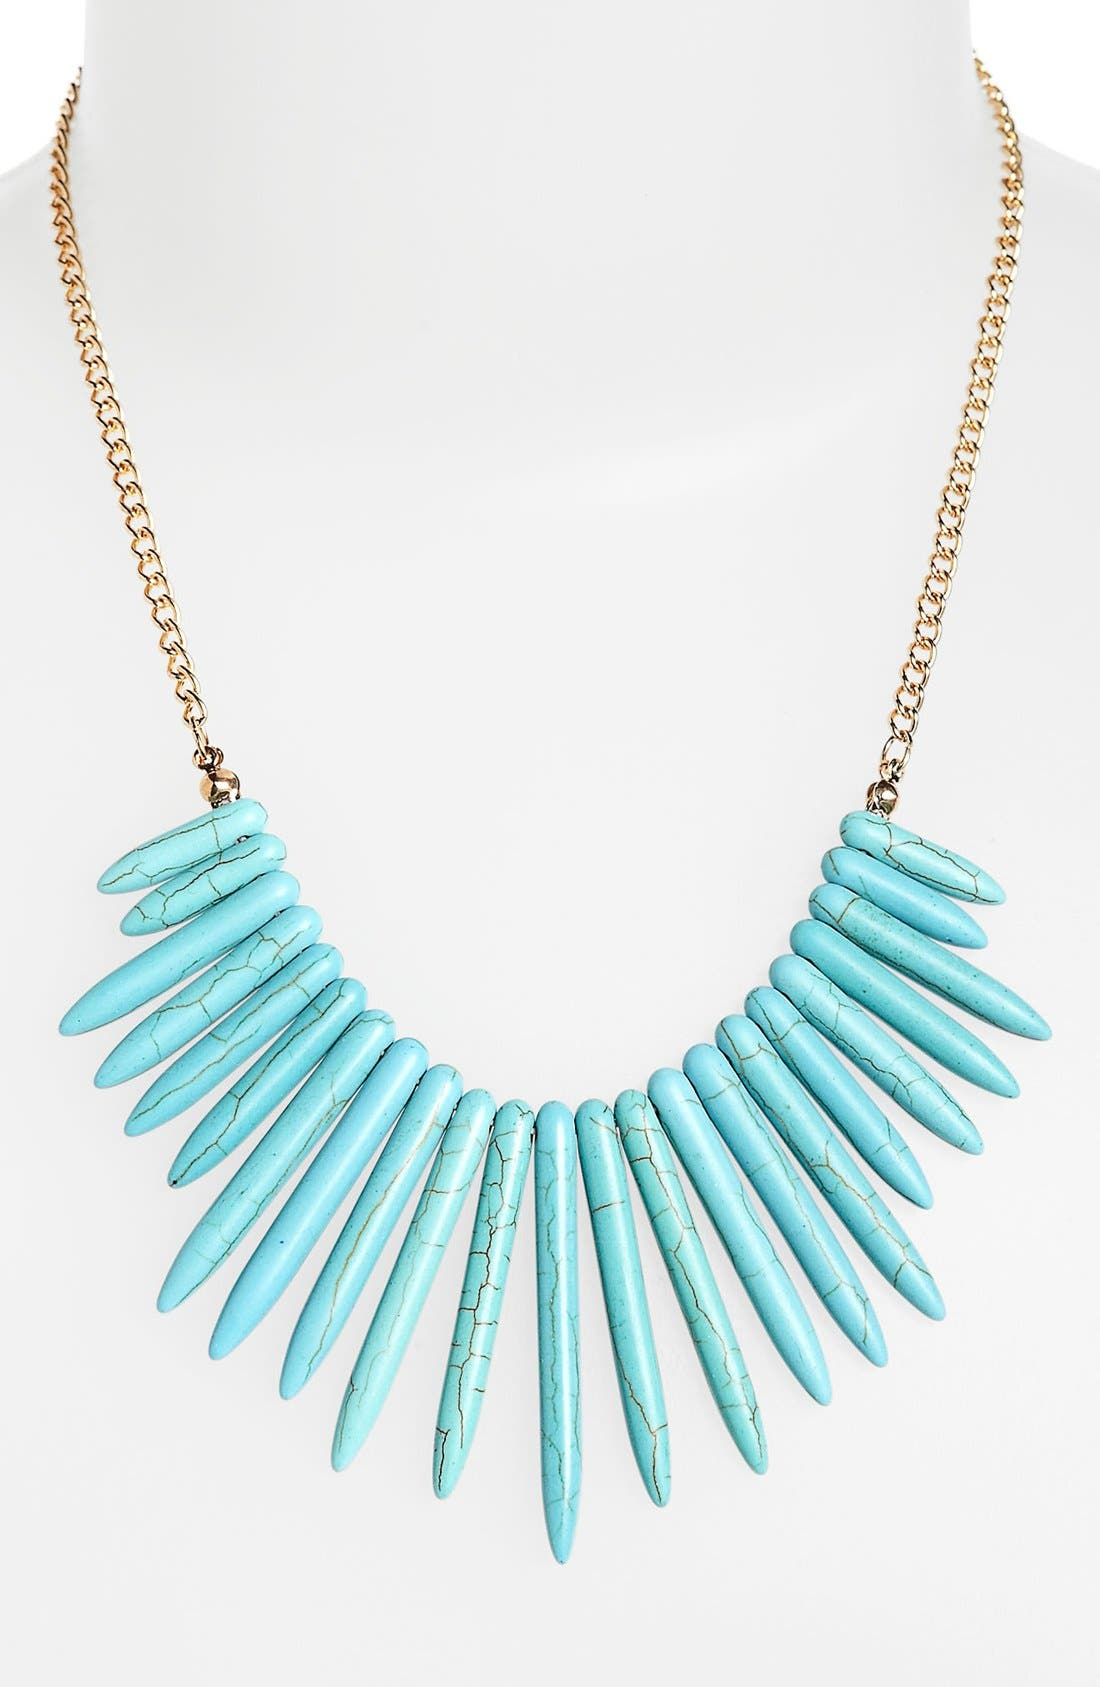 Faux Turquoise Spike Statement Necklace,                             Main thumbnail 1, color,                             440